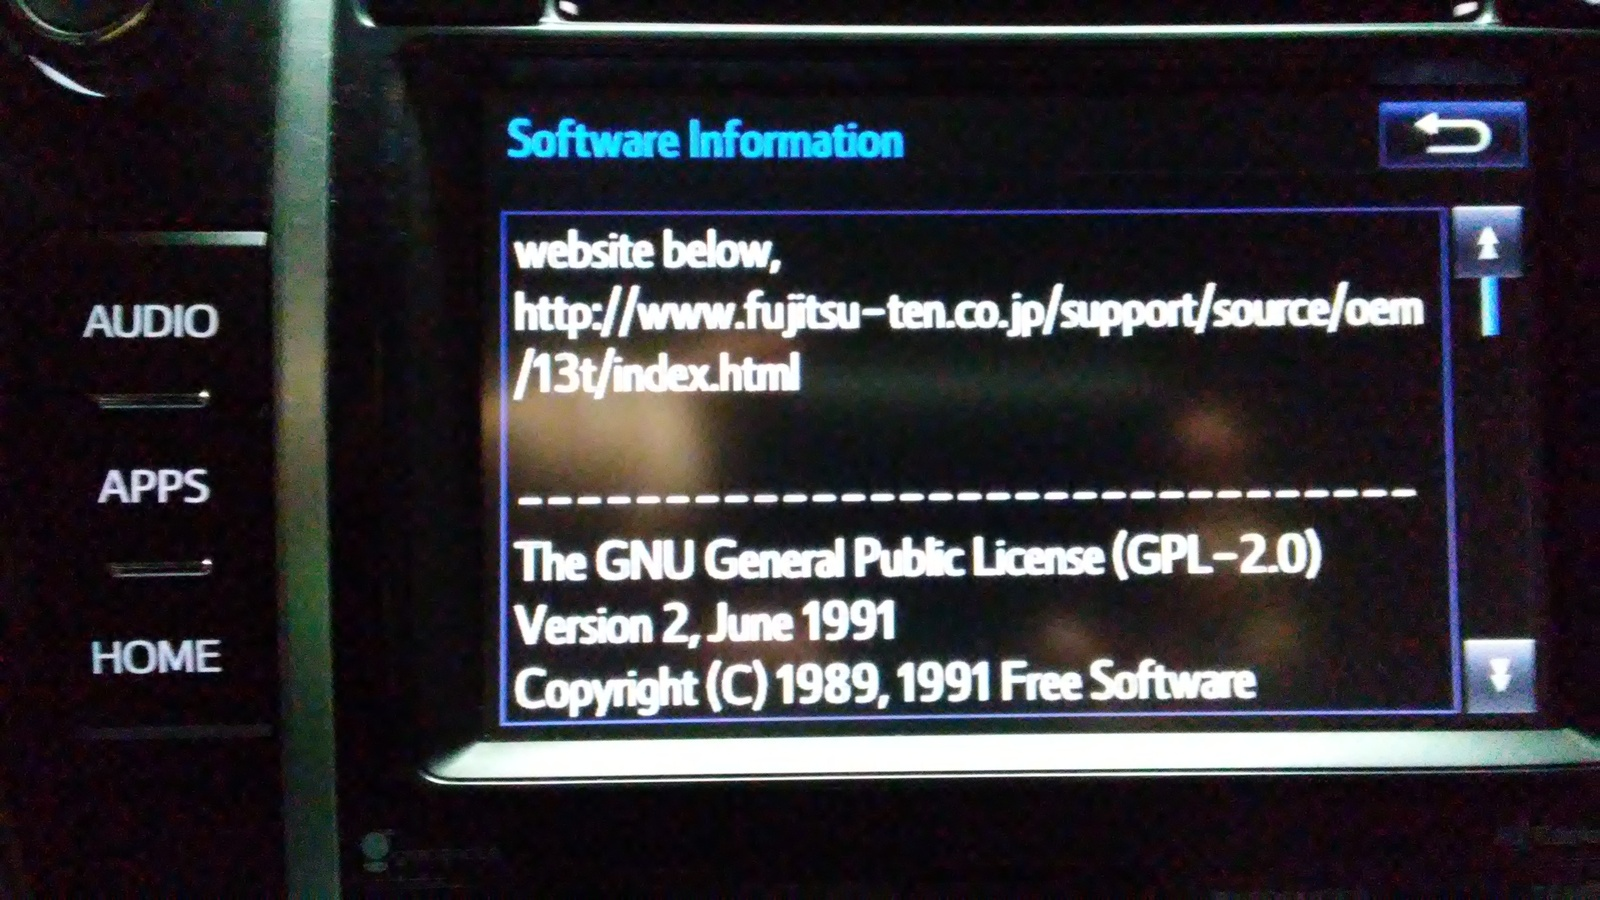 I have a 2014 toyota camry hybrid has anyone tried to download and install the software update http www fujitsu ten co support source oem 13t index html